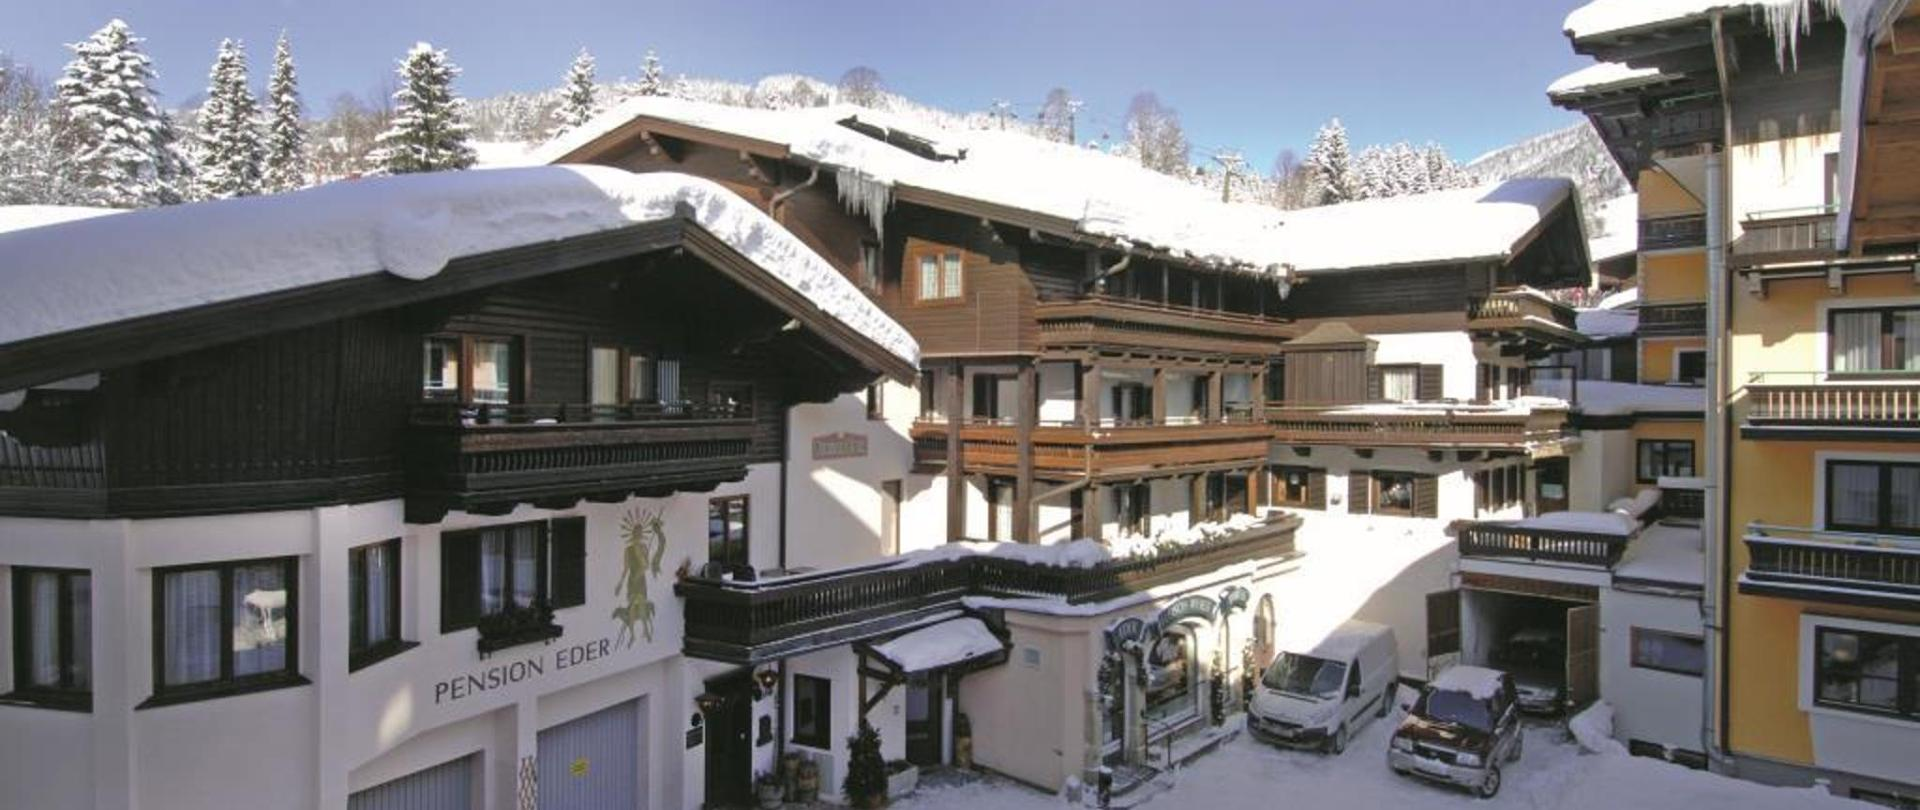 Pension Eder Official Site Hotels In Saalbach Hinterglemm